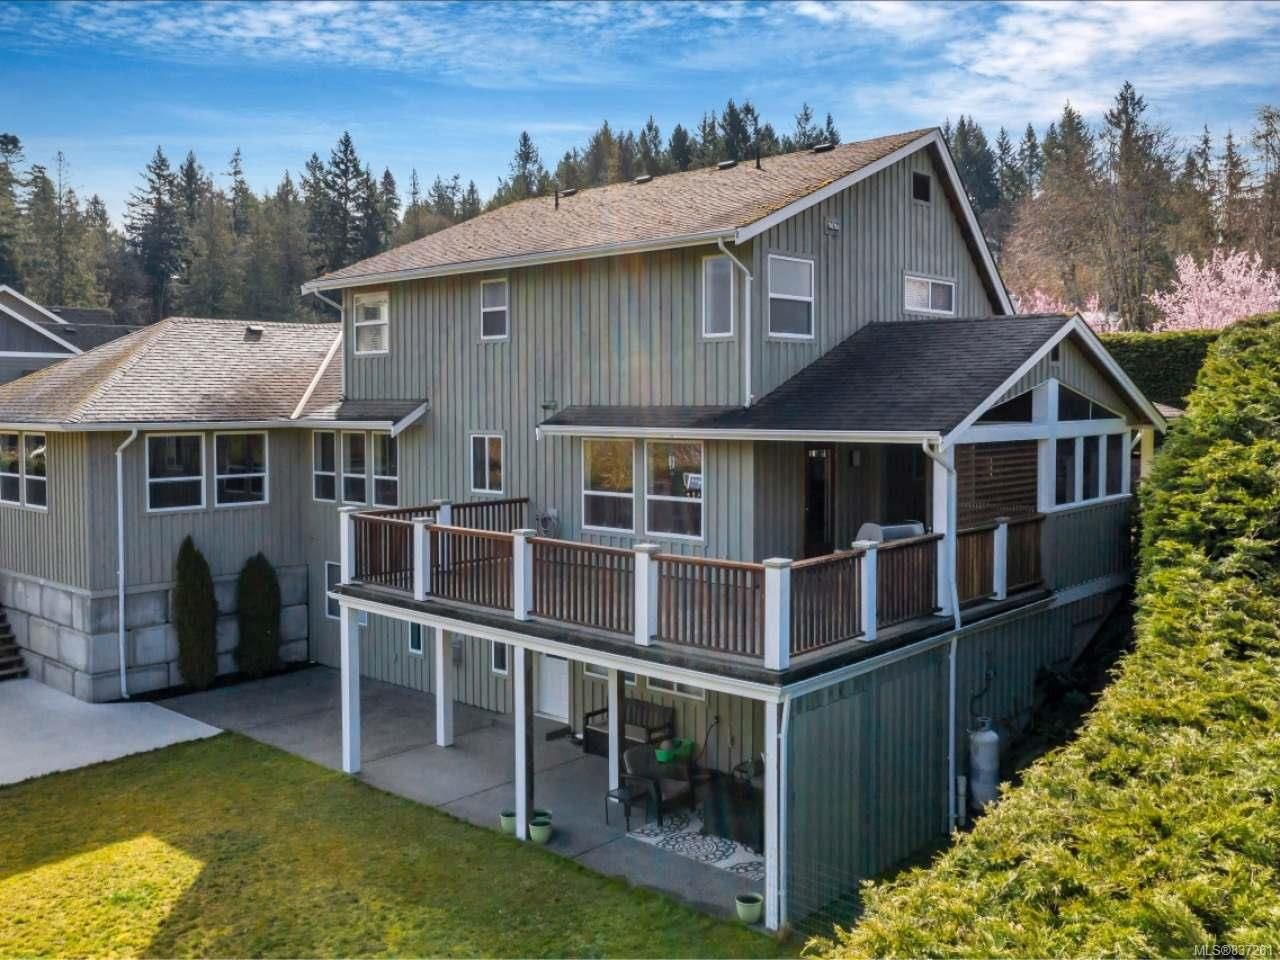 Photo 38: Photos: 925 Lilmac Rd in MILL BAY: ML Mill Bay House for sale (Malahat & Area)  : MLS®# 837281